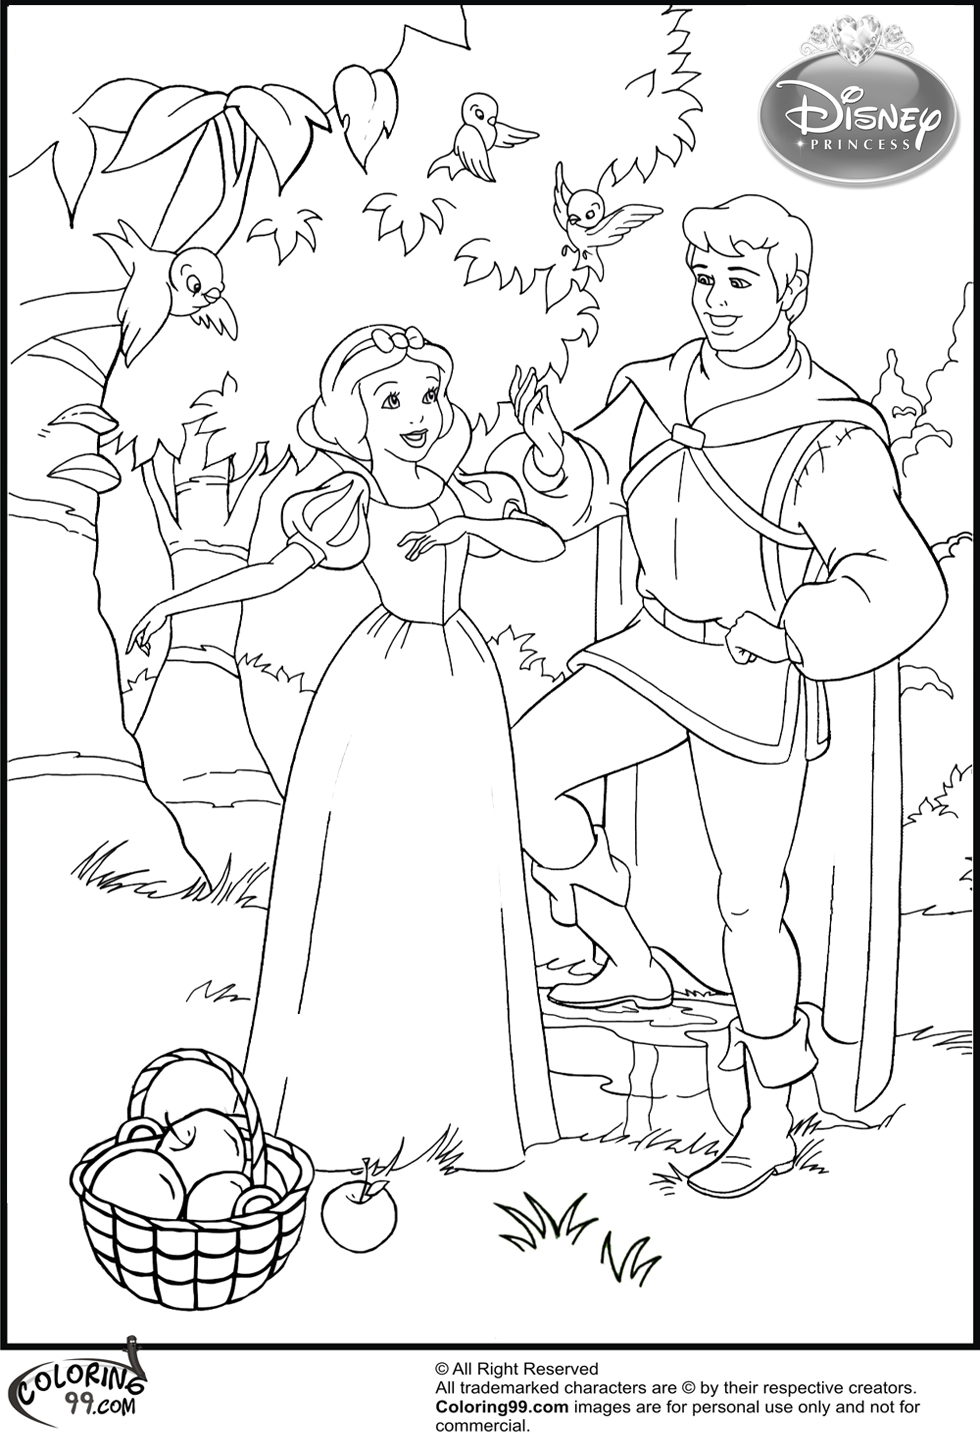 Snow white and the prince coloring pages team colors for Snow white coloring pages